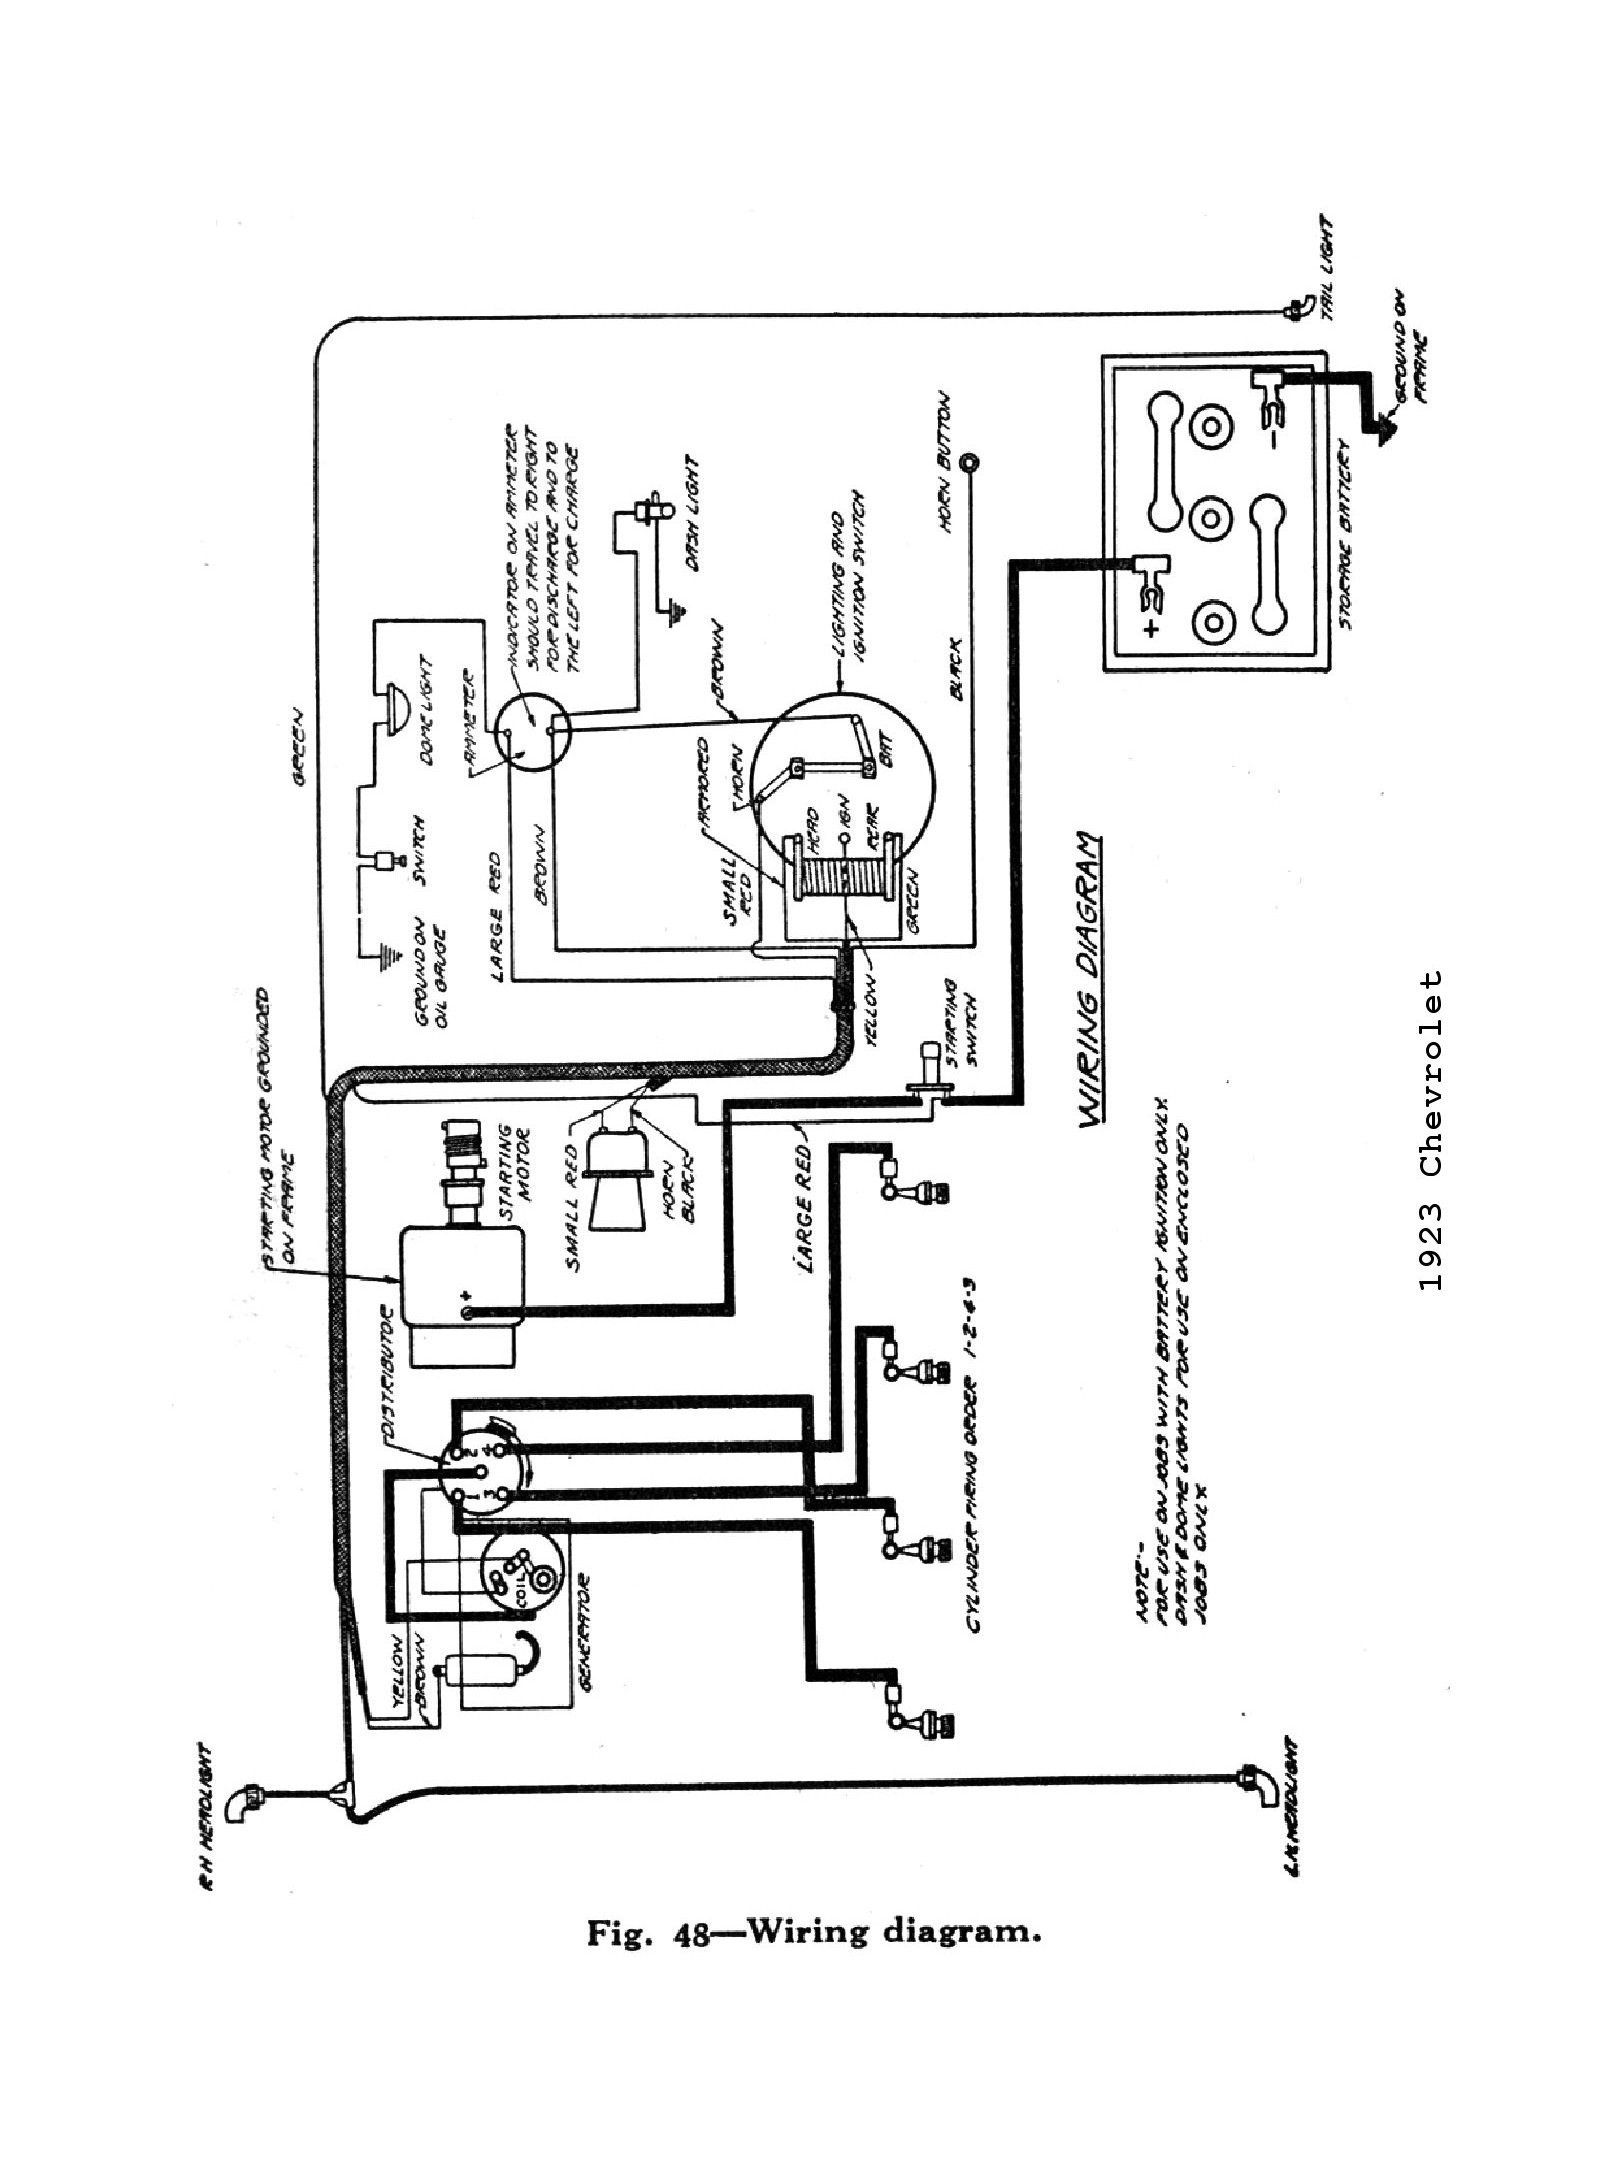 hight resolution of chevy wiring diagrams1960 chevy wiring diagram 1